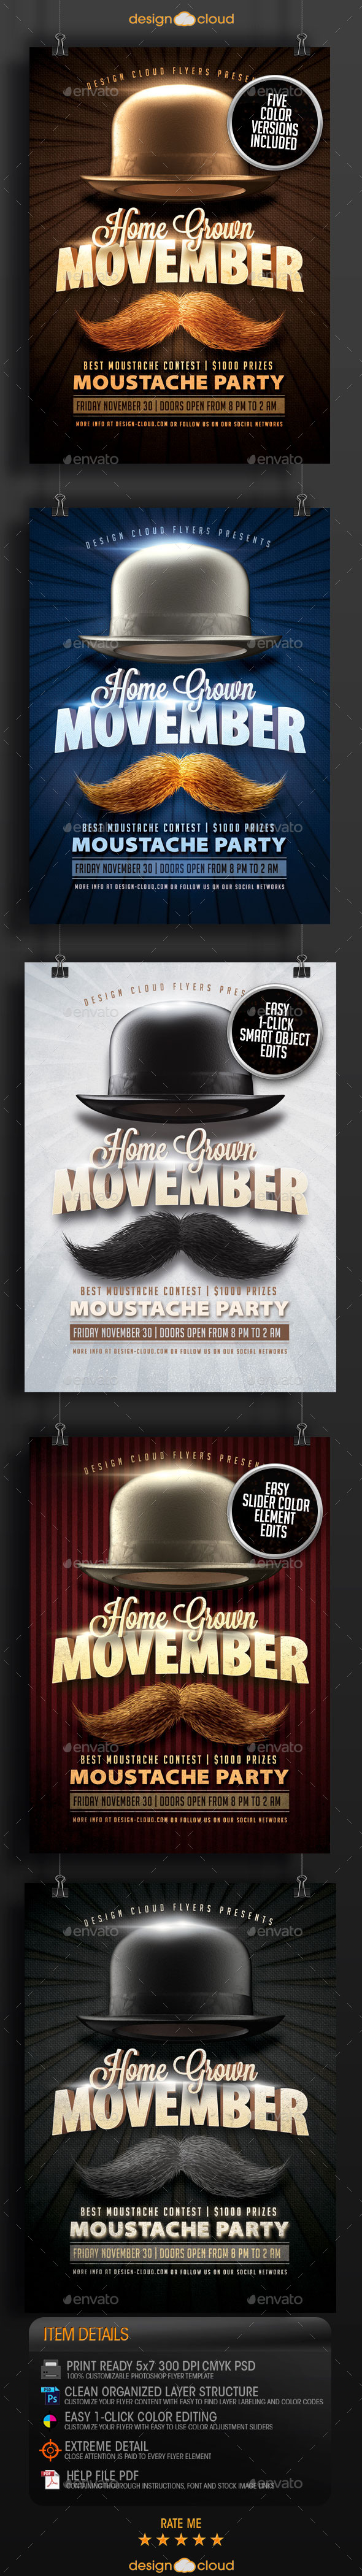 Movember Home Grown Moustache Party Flyer Template - Miscellaneous Events